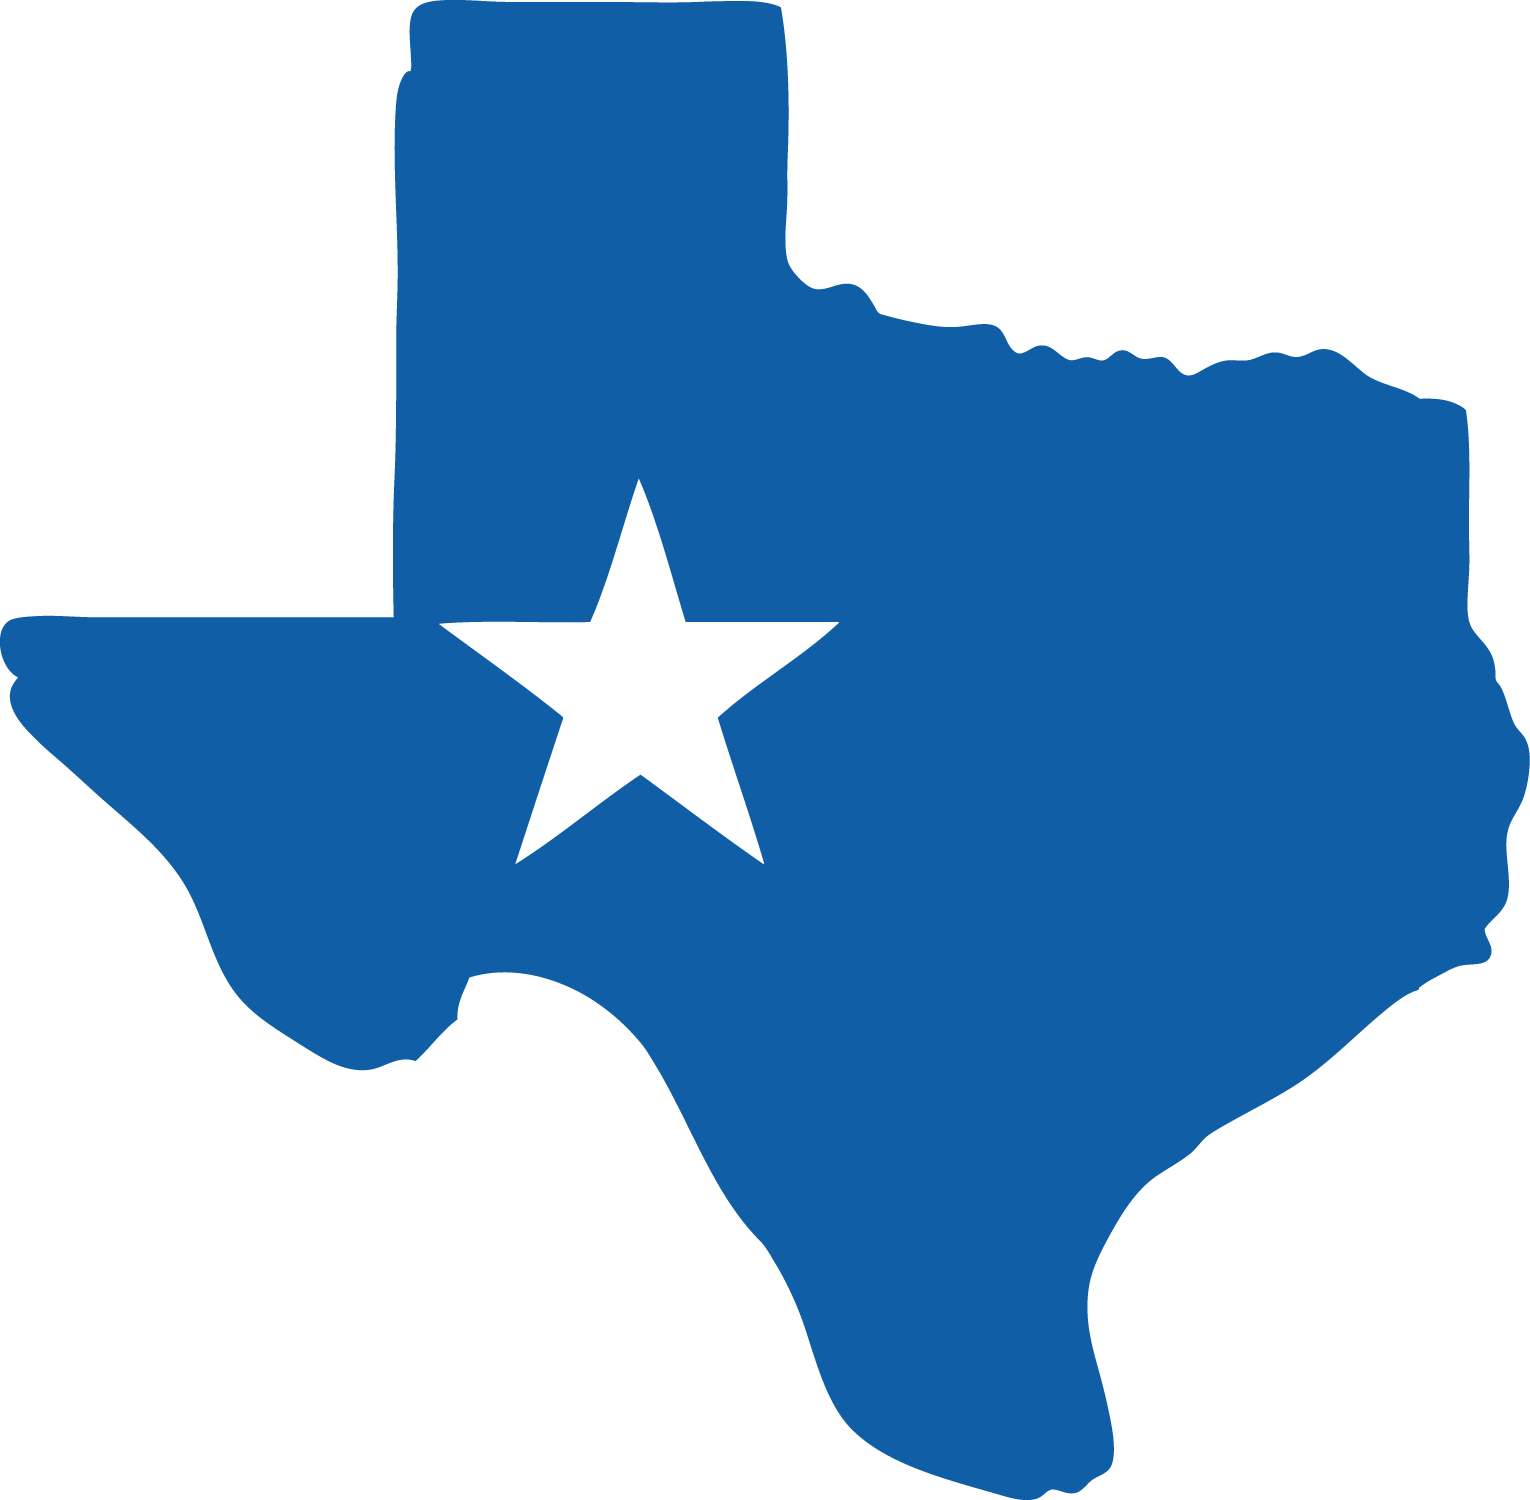 Texas Outline Clipart - Free Clipart Images